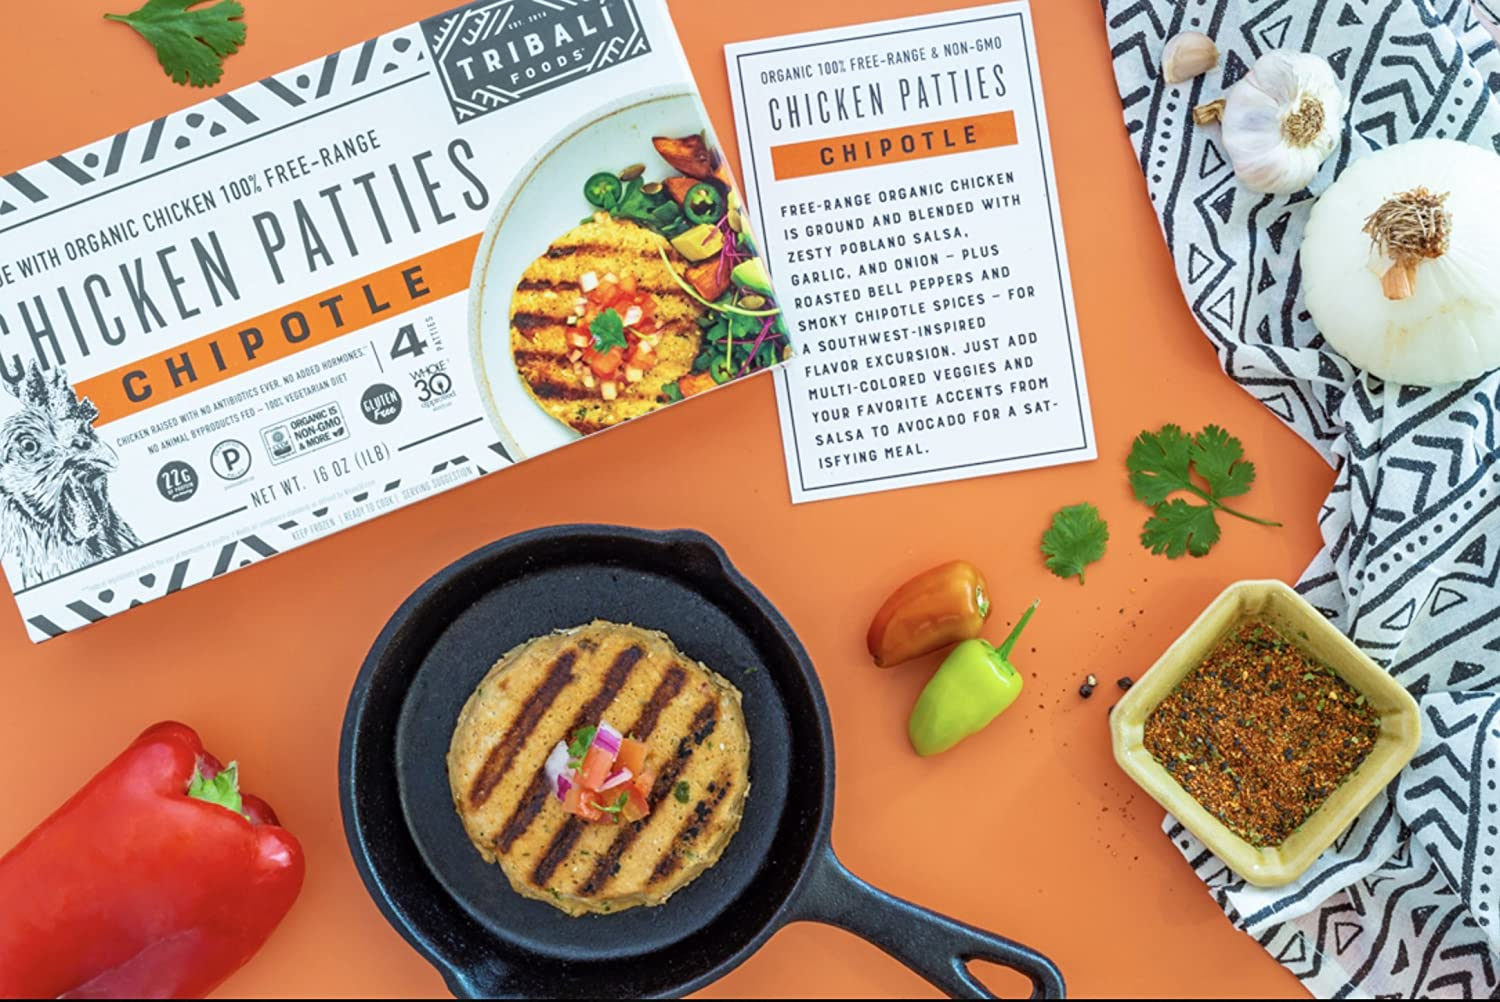 TRIBALÍ Foods, Organic Patties, Variety 6-Pack Combo (3 Chipotle Chicken + 3 Umami Beef): Amazon.com: Grocery & Gourmet Food